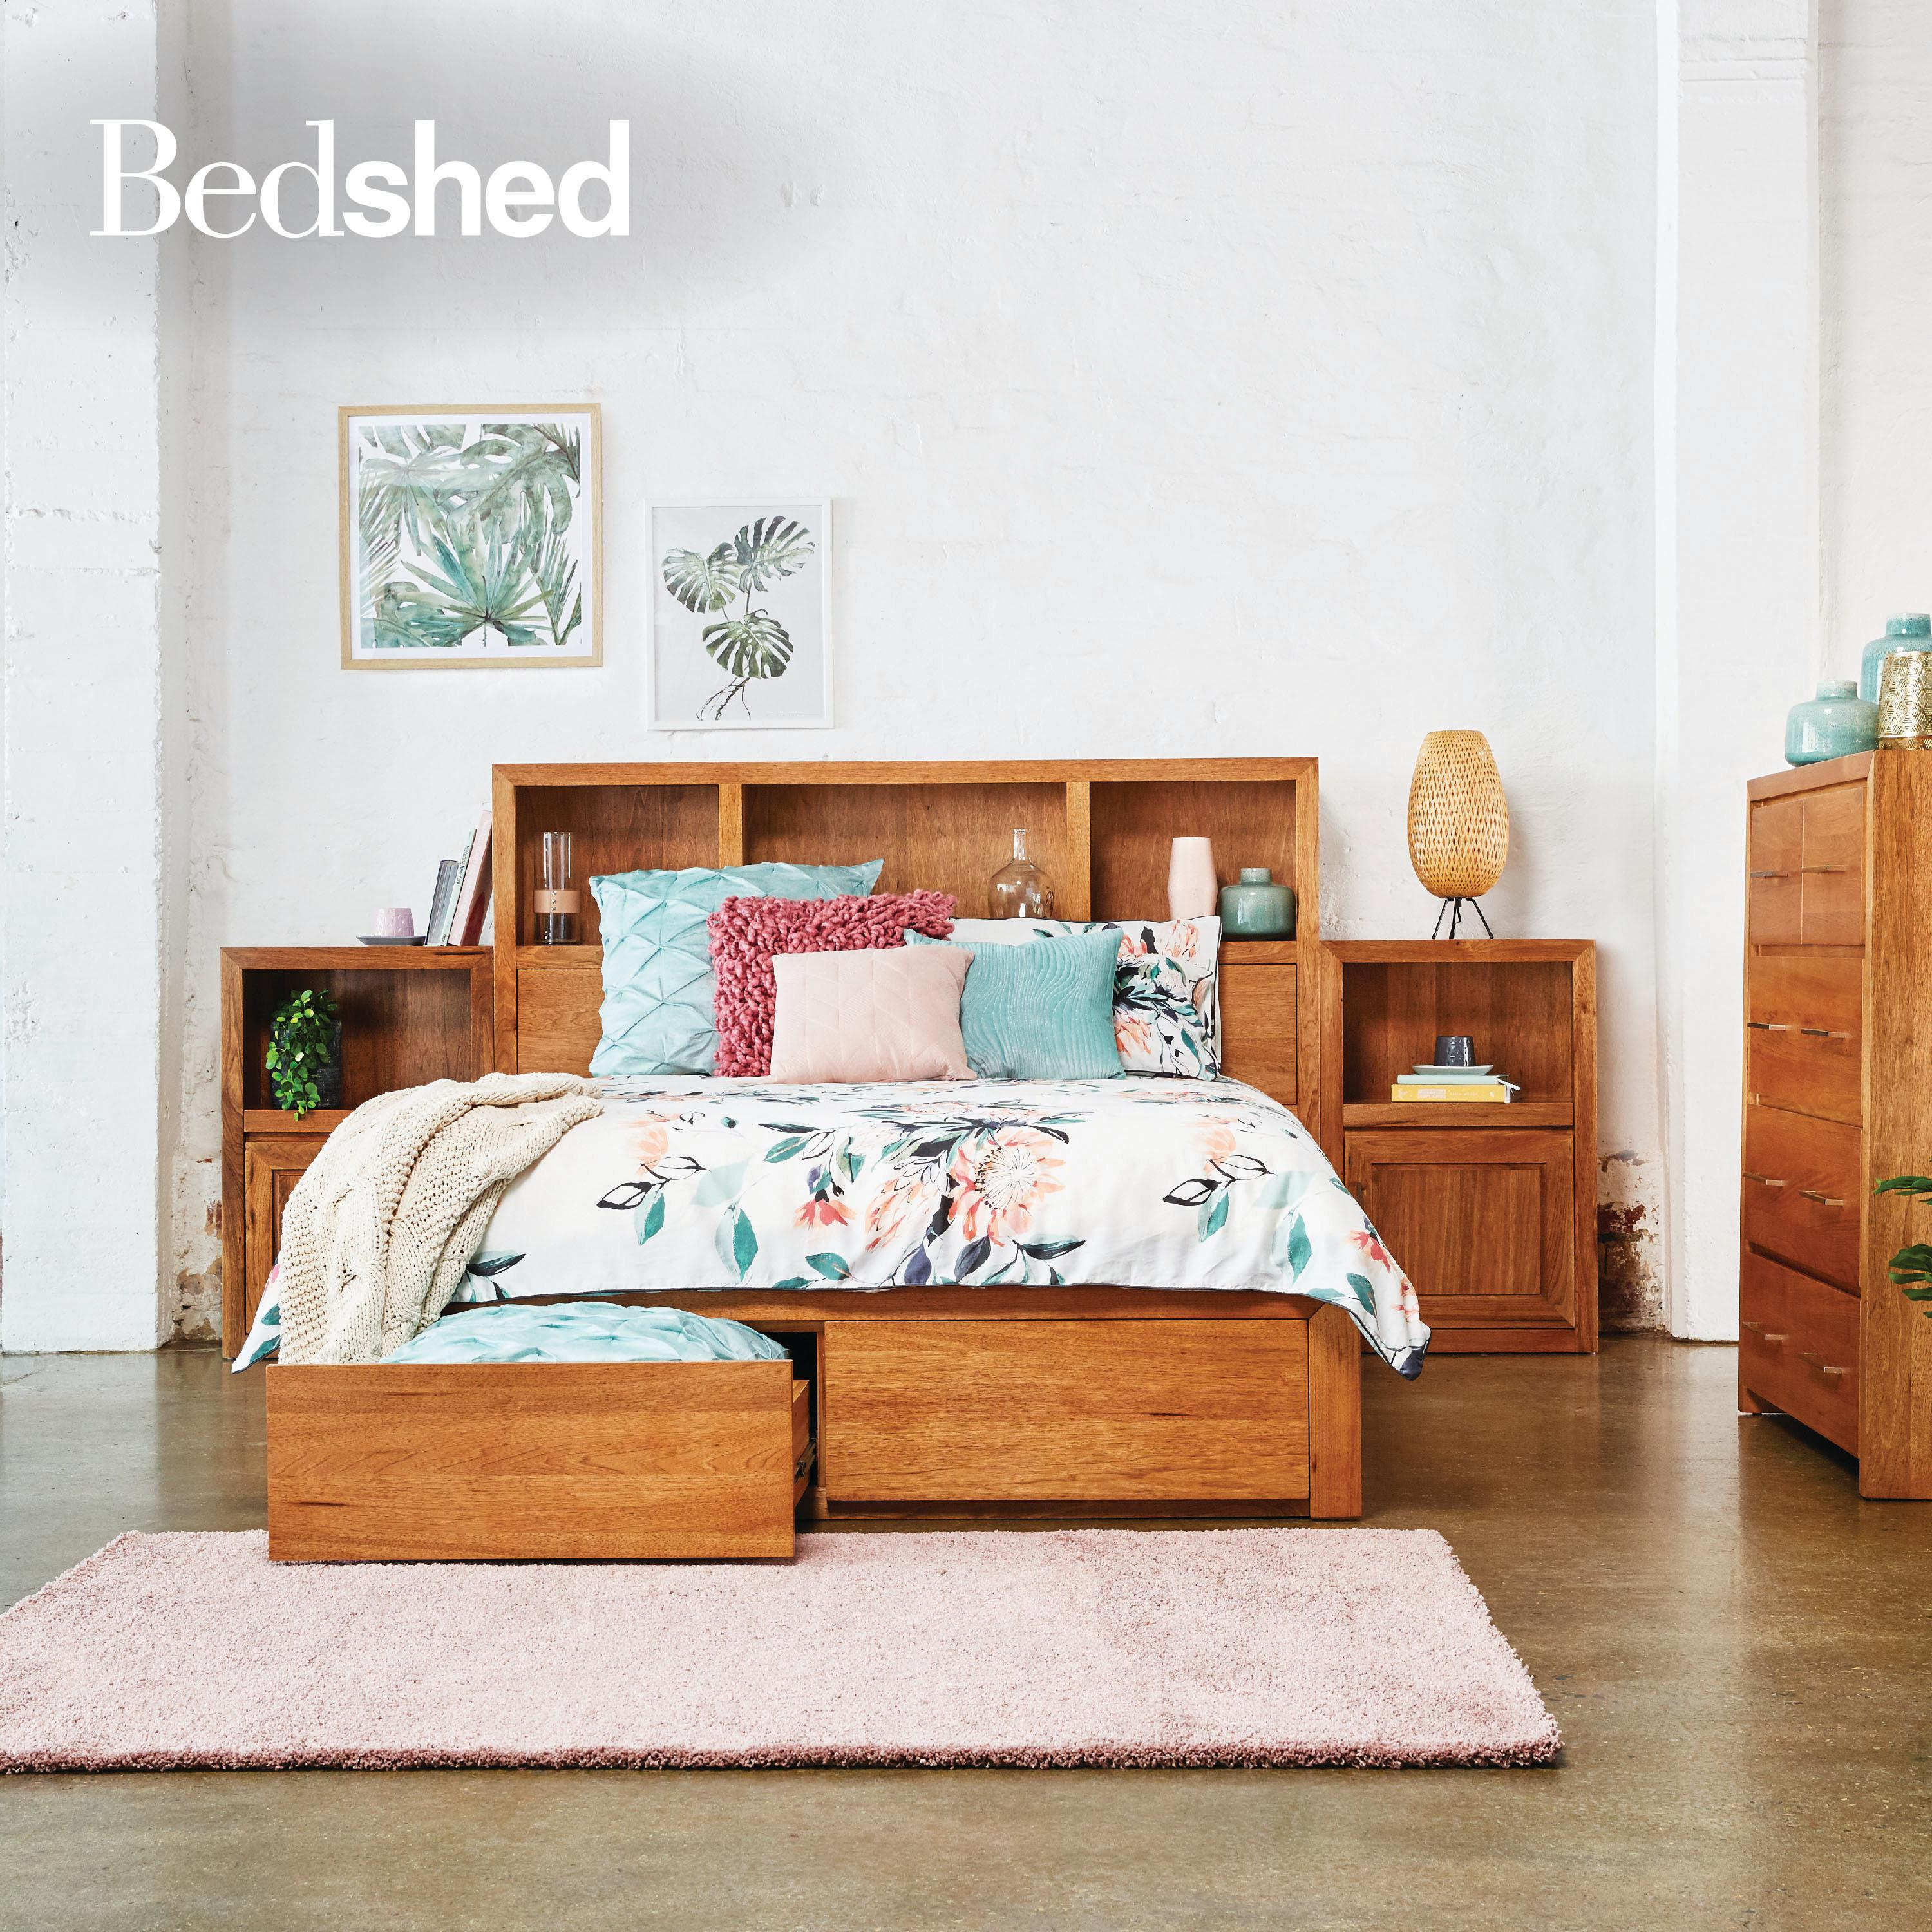 Bedshed Morley Mattresses Manufacture Wholesale Retail